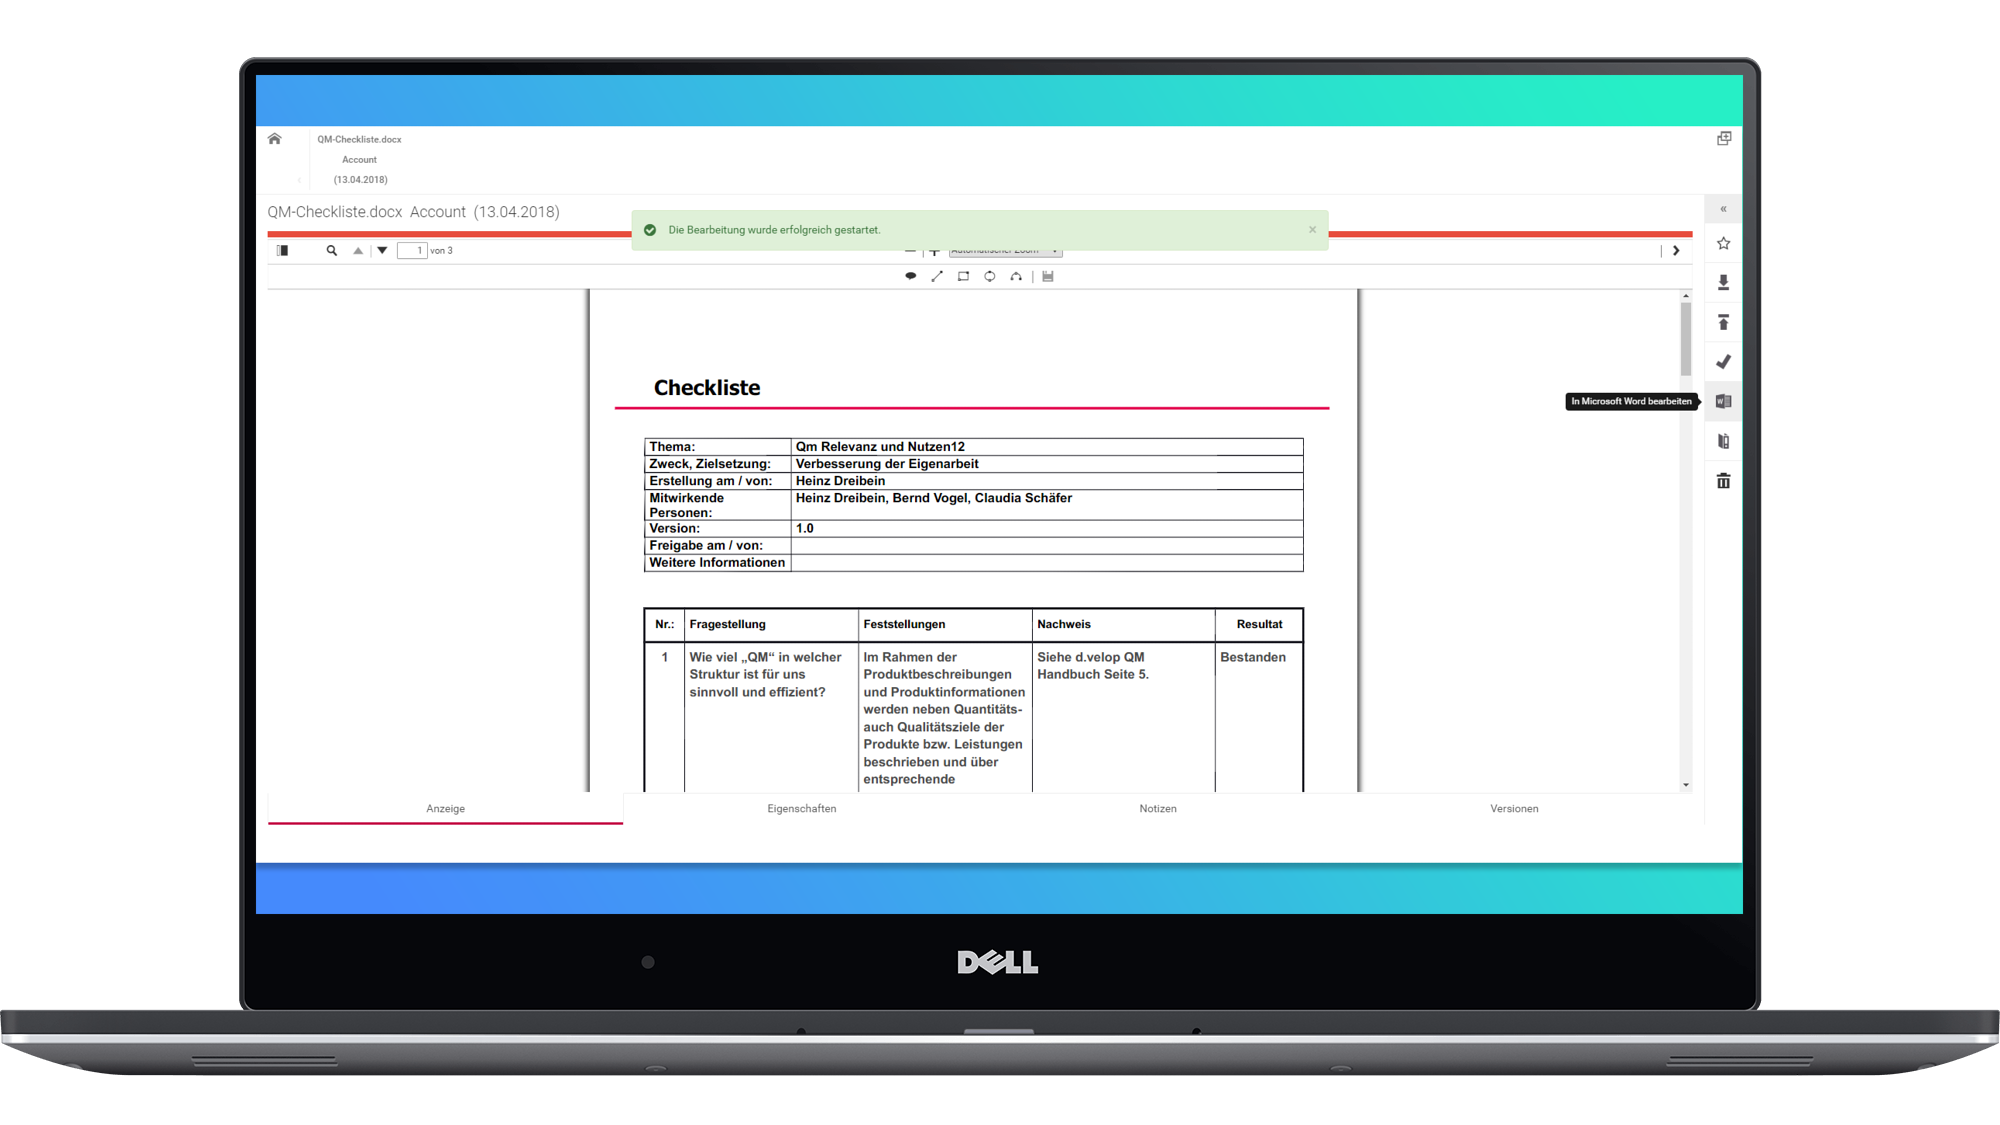 d-velop-documents-for-salesforce-validierung-office-doc-bearbeiten.png